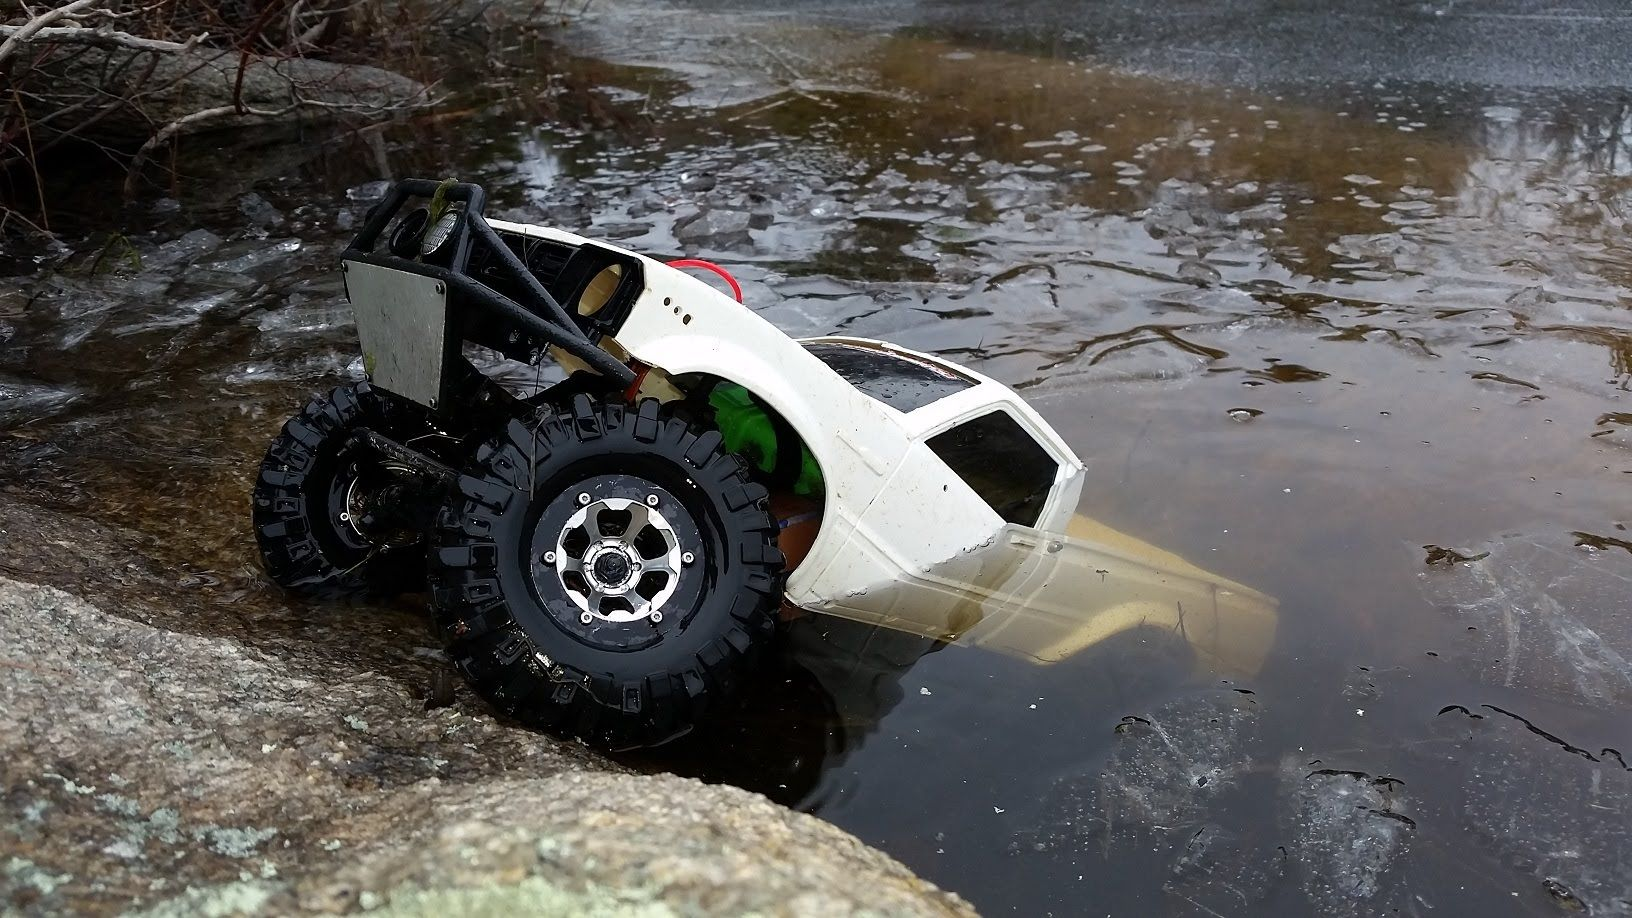 Pin By David Schaefer On Scale Rc Rc Cars Trucks Rc